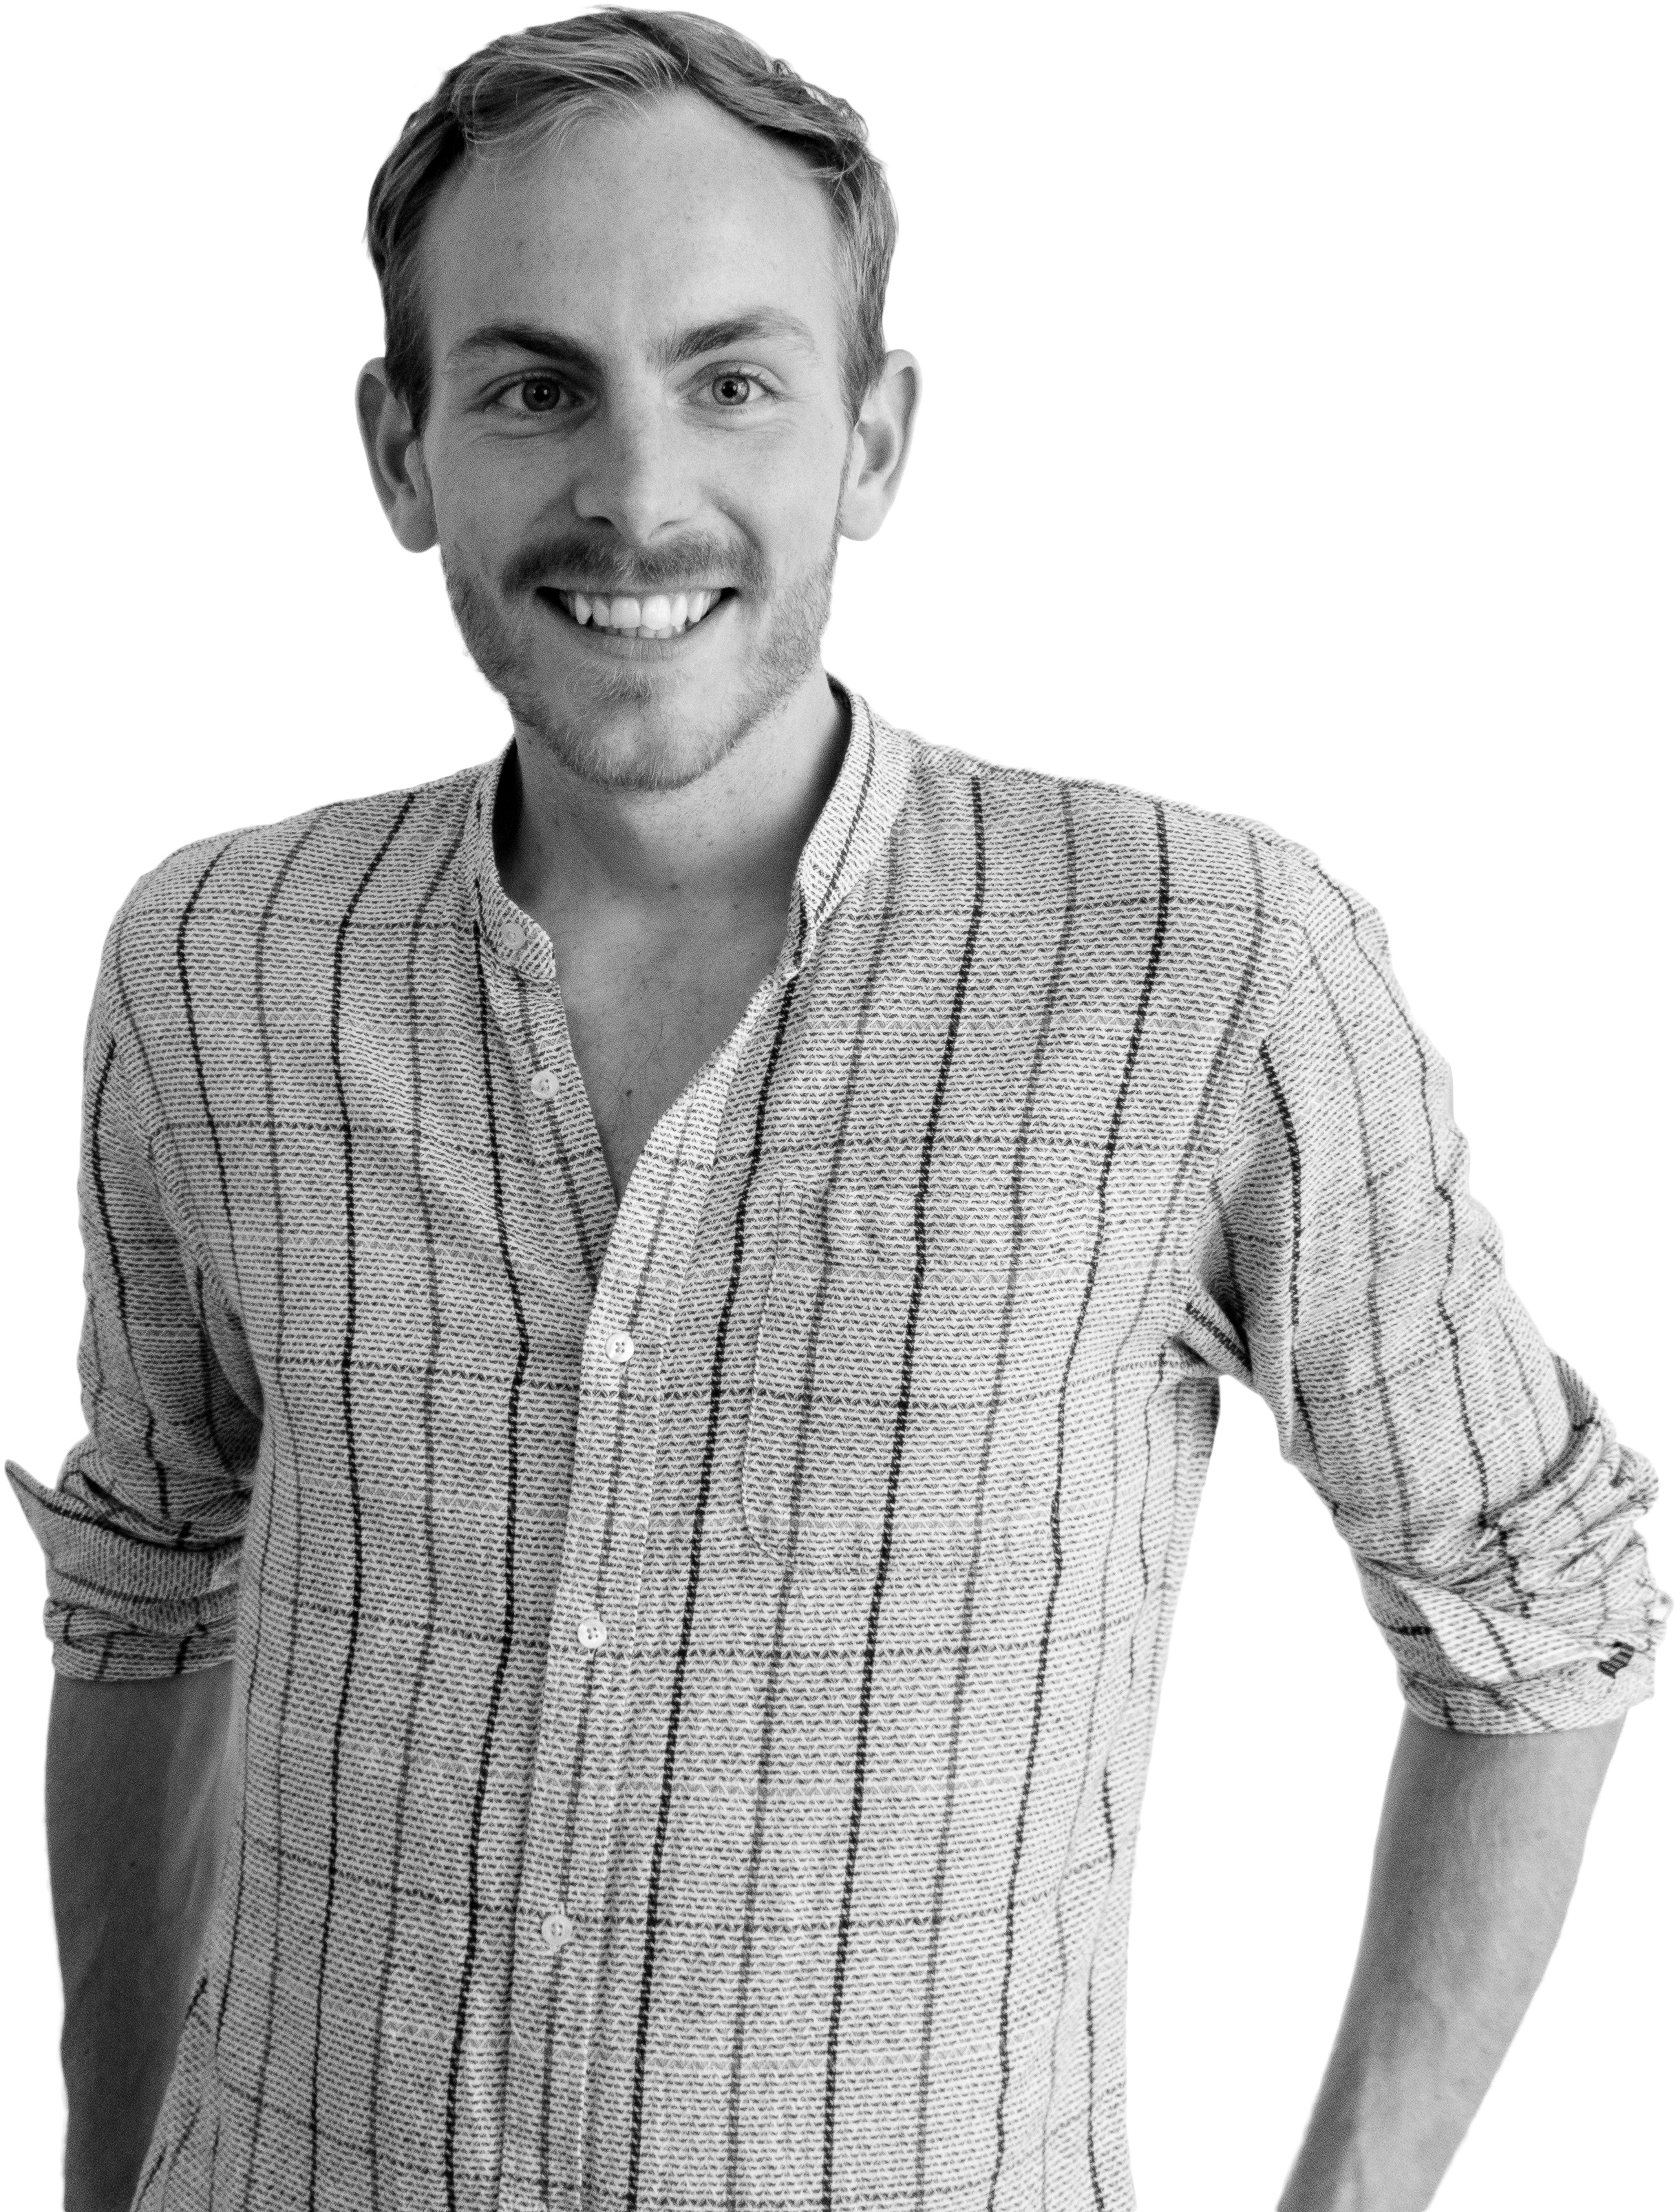 - DAN GAVANStudio ManagerHaving joined the team in the middle of 2018, Dan brings several years of experience managing design studios, his understanding of the industry coupled with an unfaltering enthusiasm and caring nature have helped him to quickly establish himself.